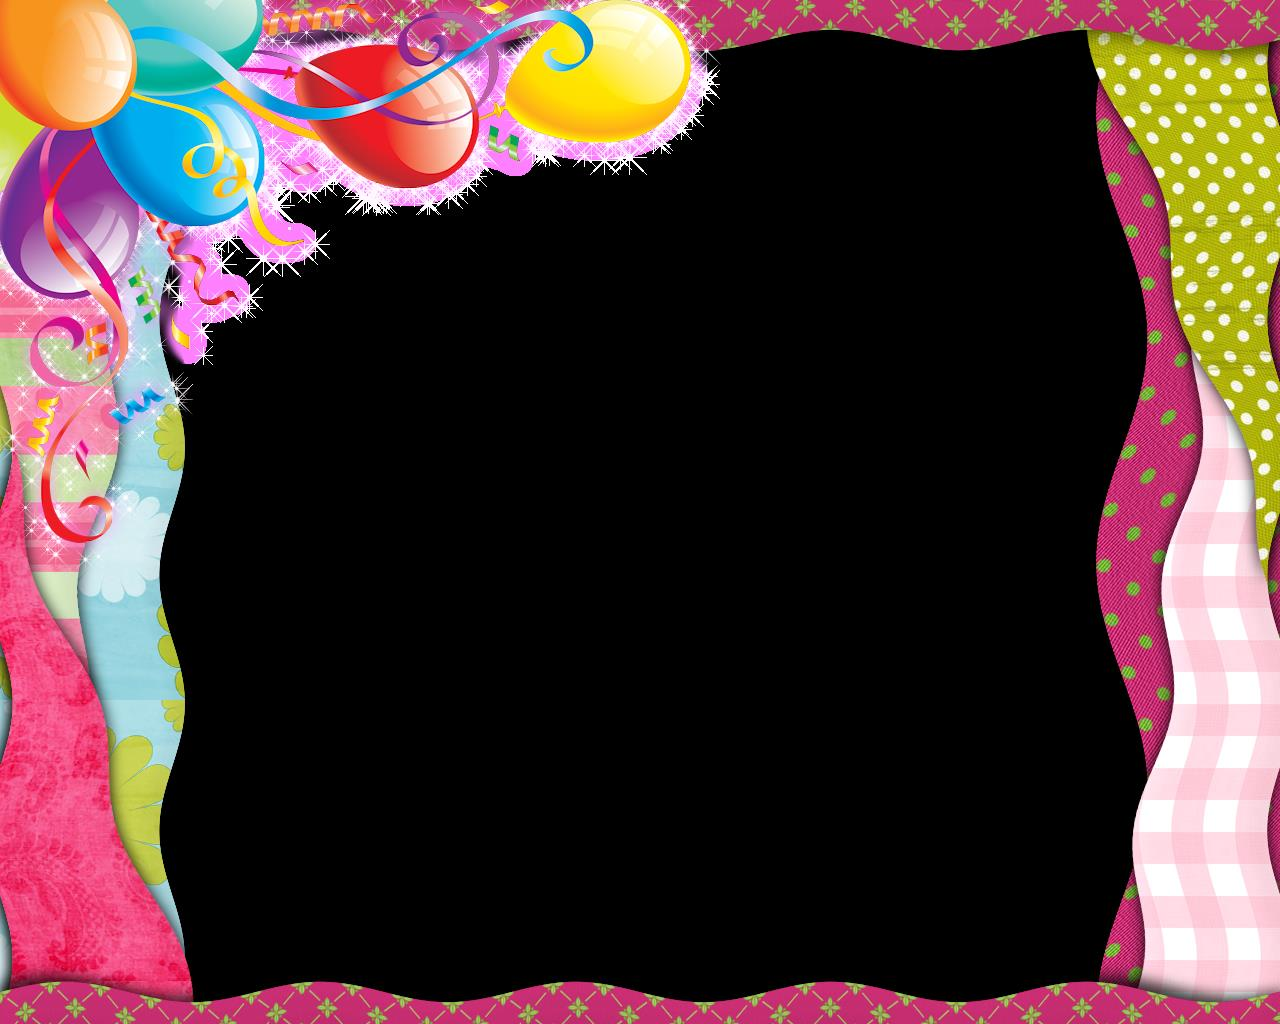 birthday borders for word documents ; happy-birthday-frame-clipart-png-37